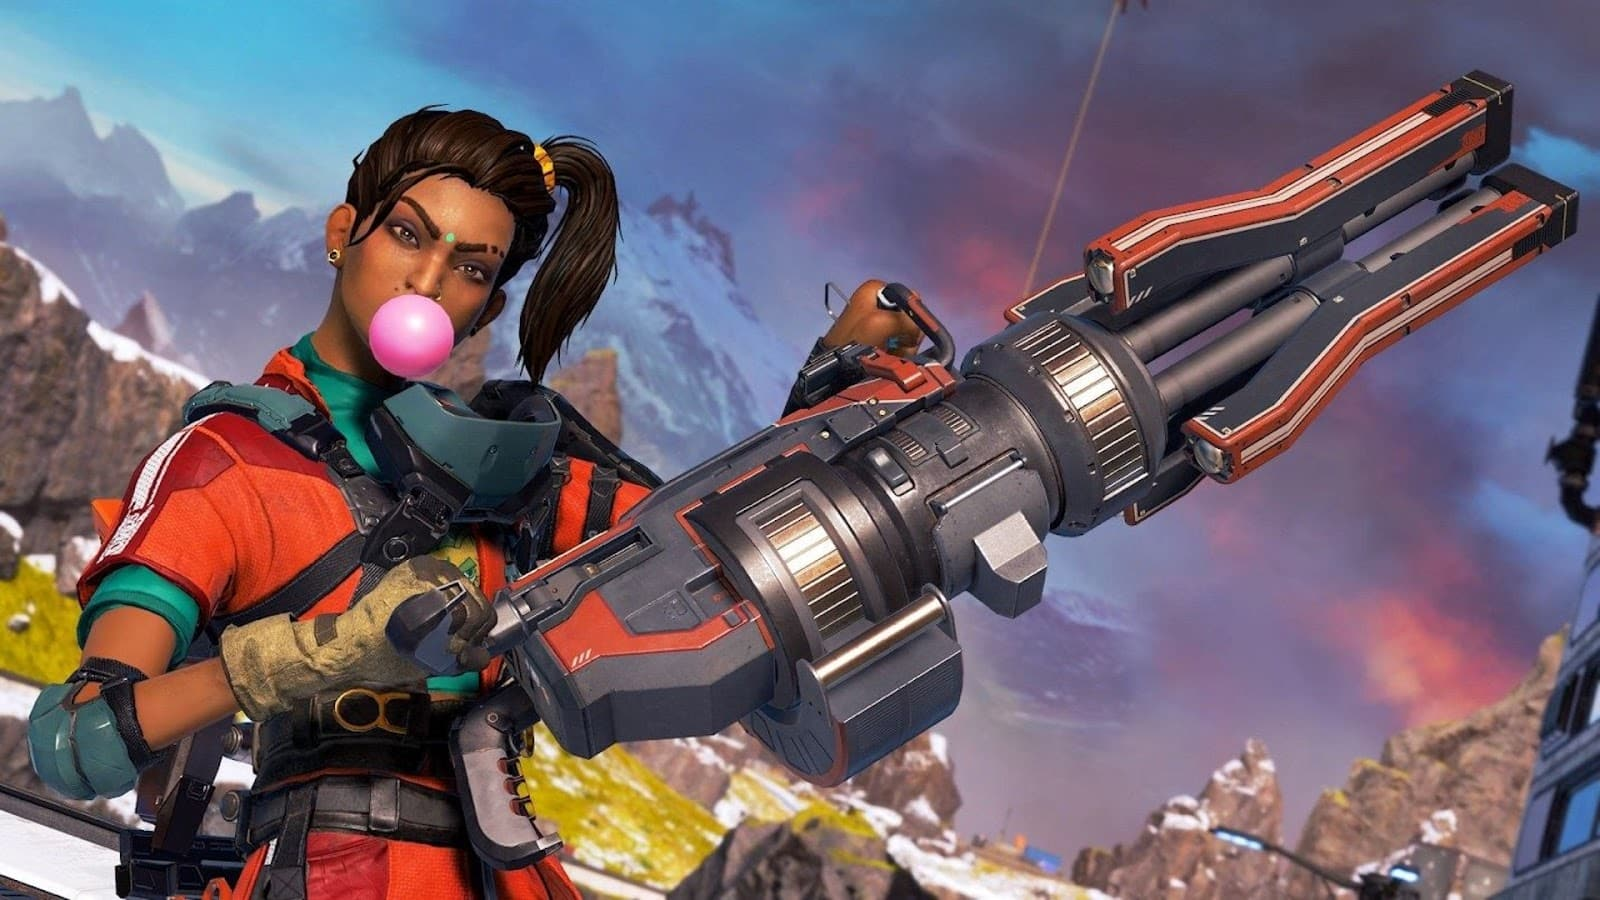 Rampart in Apex Legends